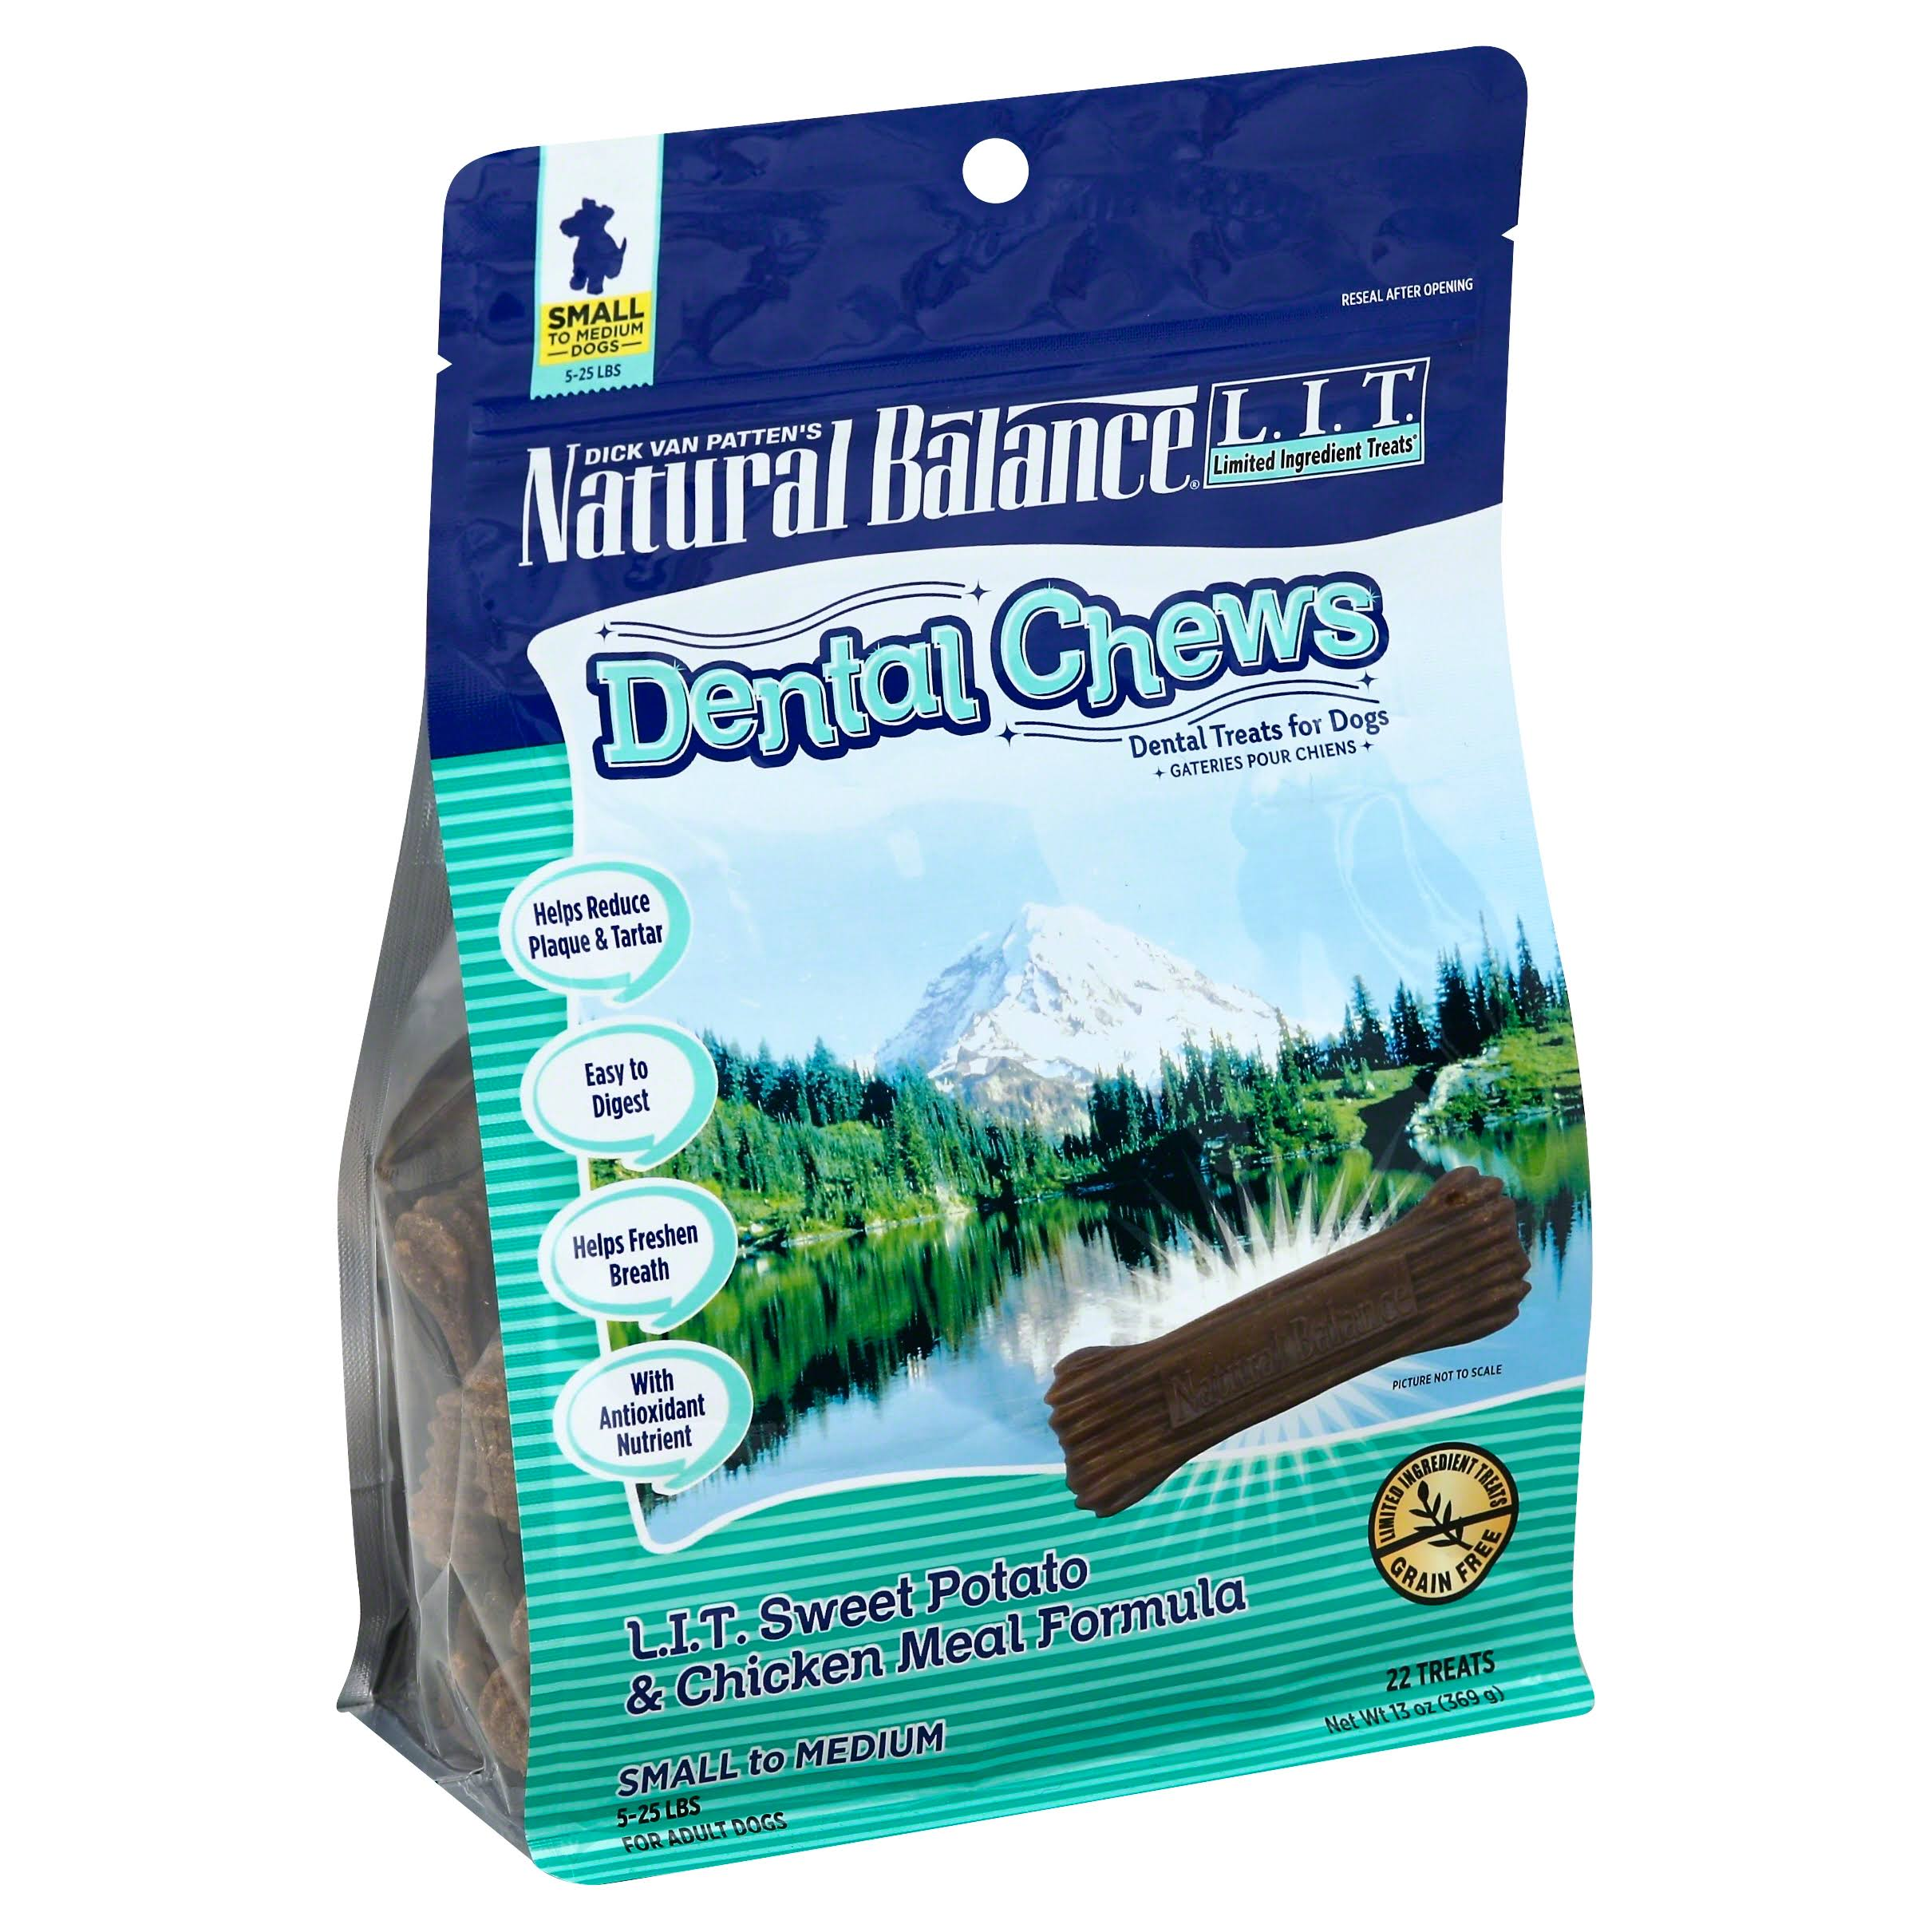 Natural Balance Dental Dog Chews - Sweet Potato & Chicken Meal Formula